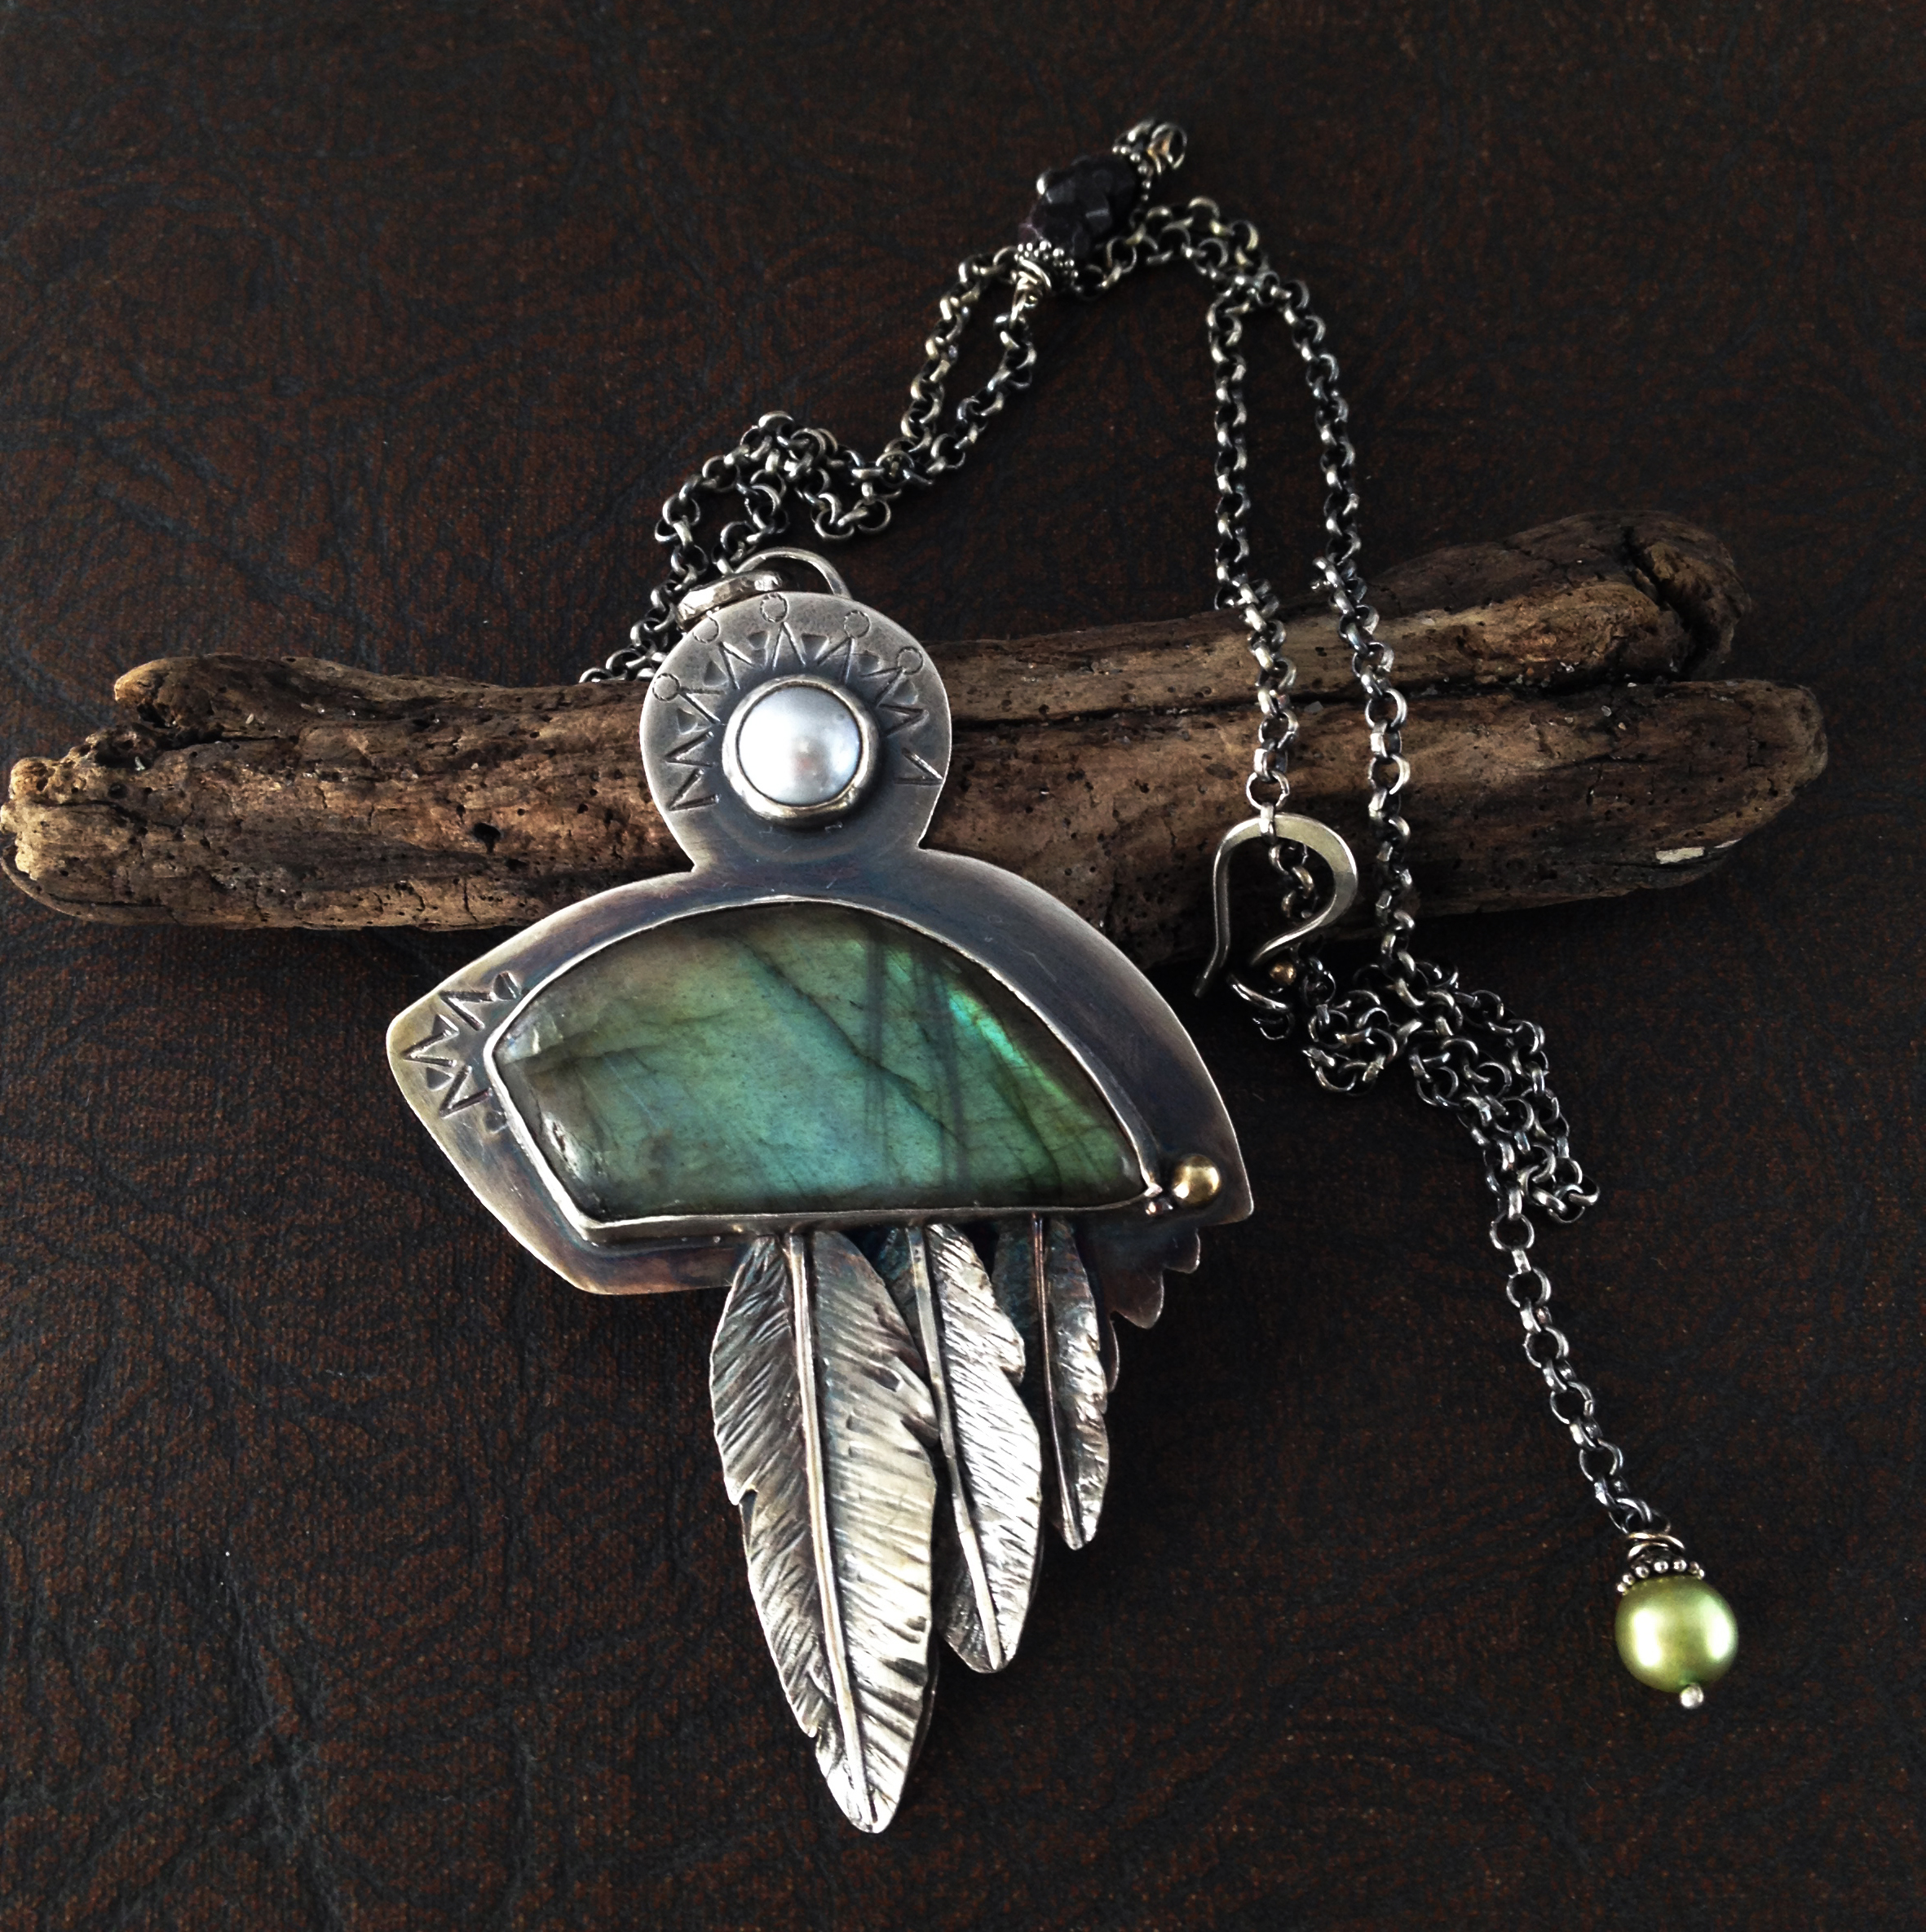 This necklace is so special to me. I love herons and I feel that this pendant truly captures their essence. I enjoy the details along the chain itself and the unique clasp.  -Aspen